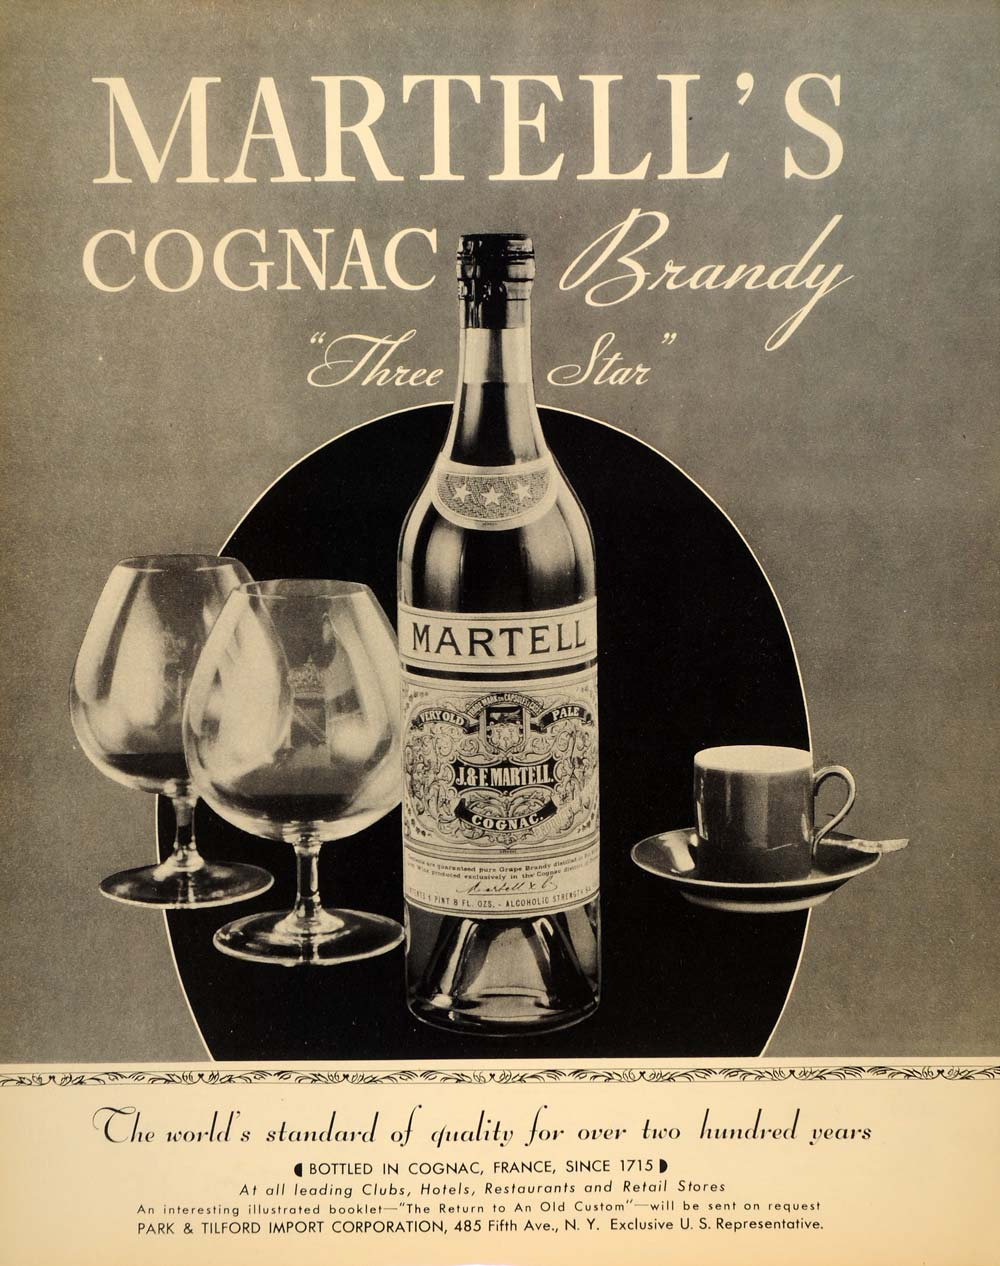 1934 Ad Park Tilford Martell's Cognac Brandy Liquor - ORIGINAL ADVERTISING FTT9